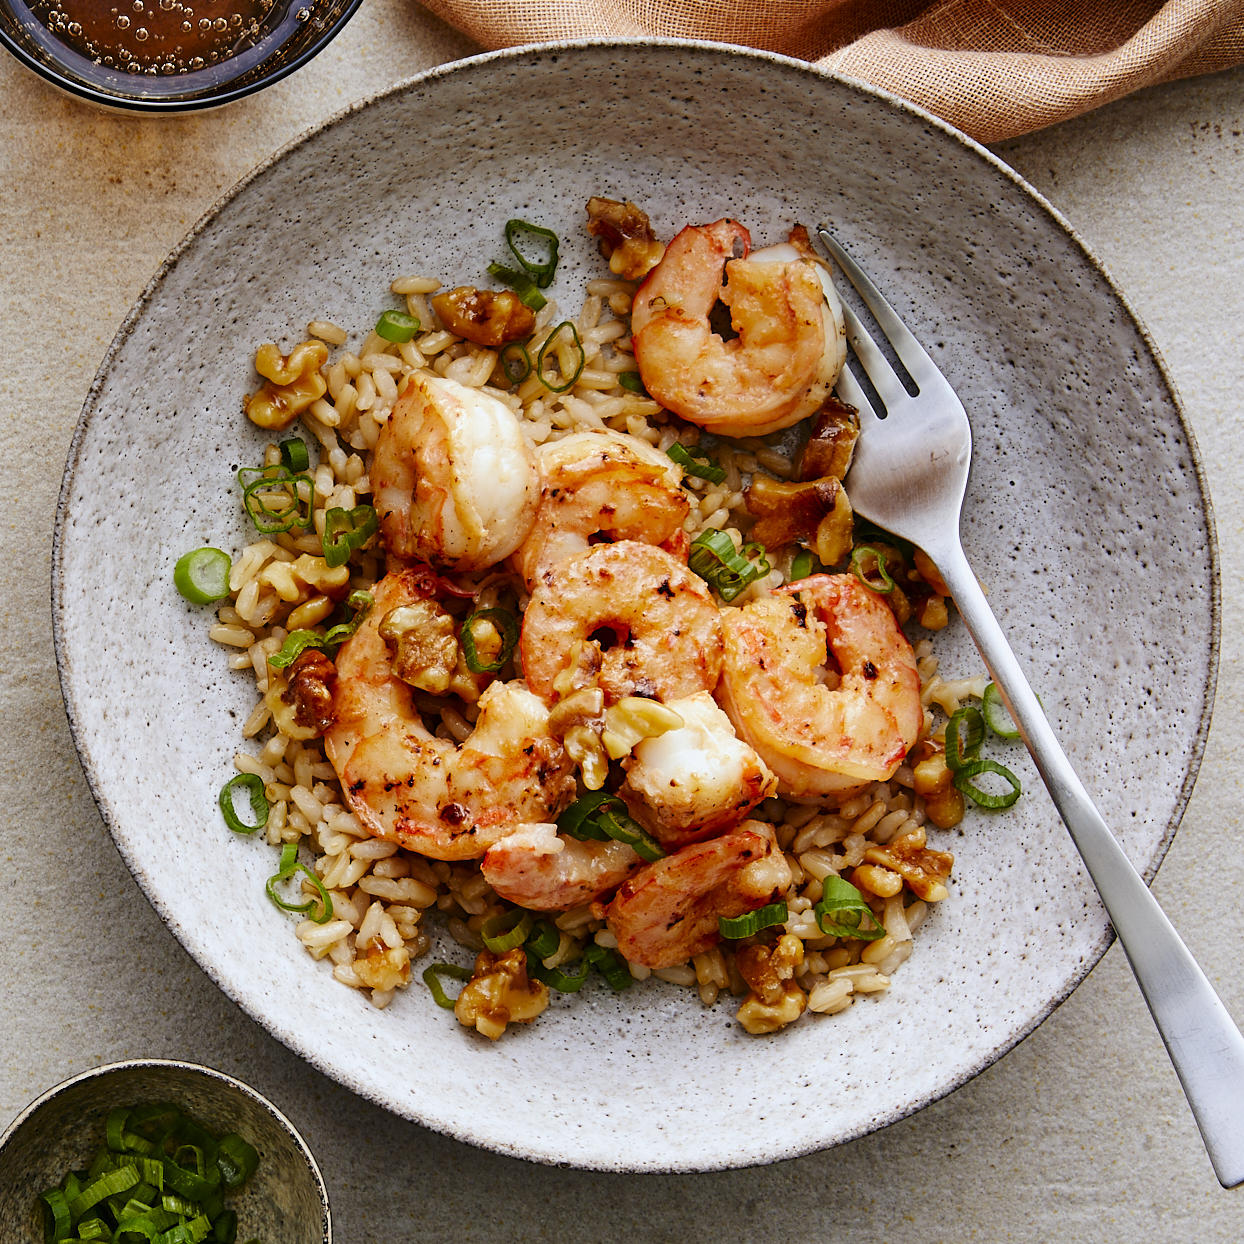 We gave a healthy spin to this popular takeout favorite. Walnuts are given a brown sugar coating that pairs nicely with sweet and savory shrimp. Serve the shrimp with rice and steamed veggies to make it a full, healthy meal. This ultra-quick dinner recipe is sure to become a new weeknight favorite. Source: EatingWell.com, January 2020